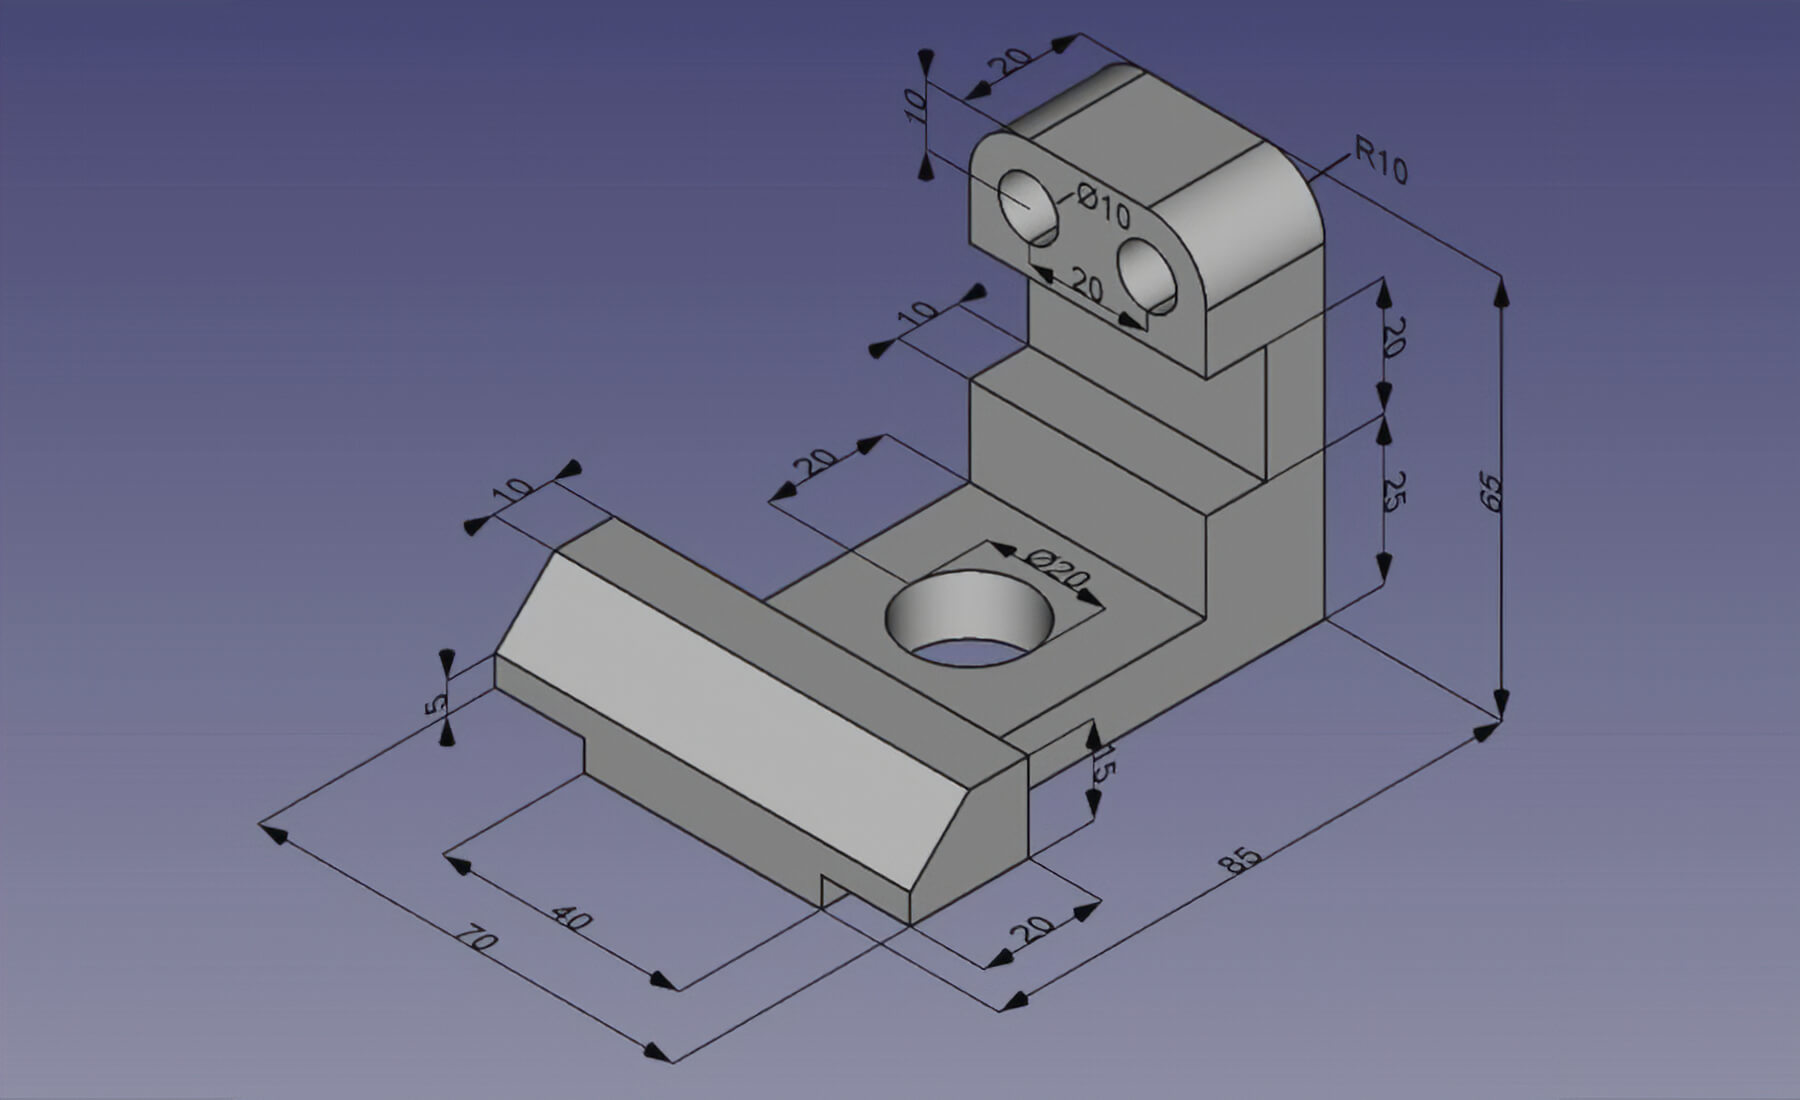 FreeCAD: Your own 3D parametric modeler